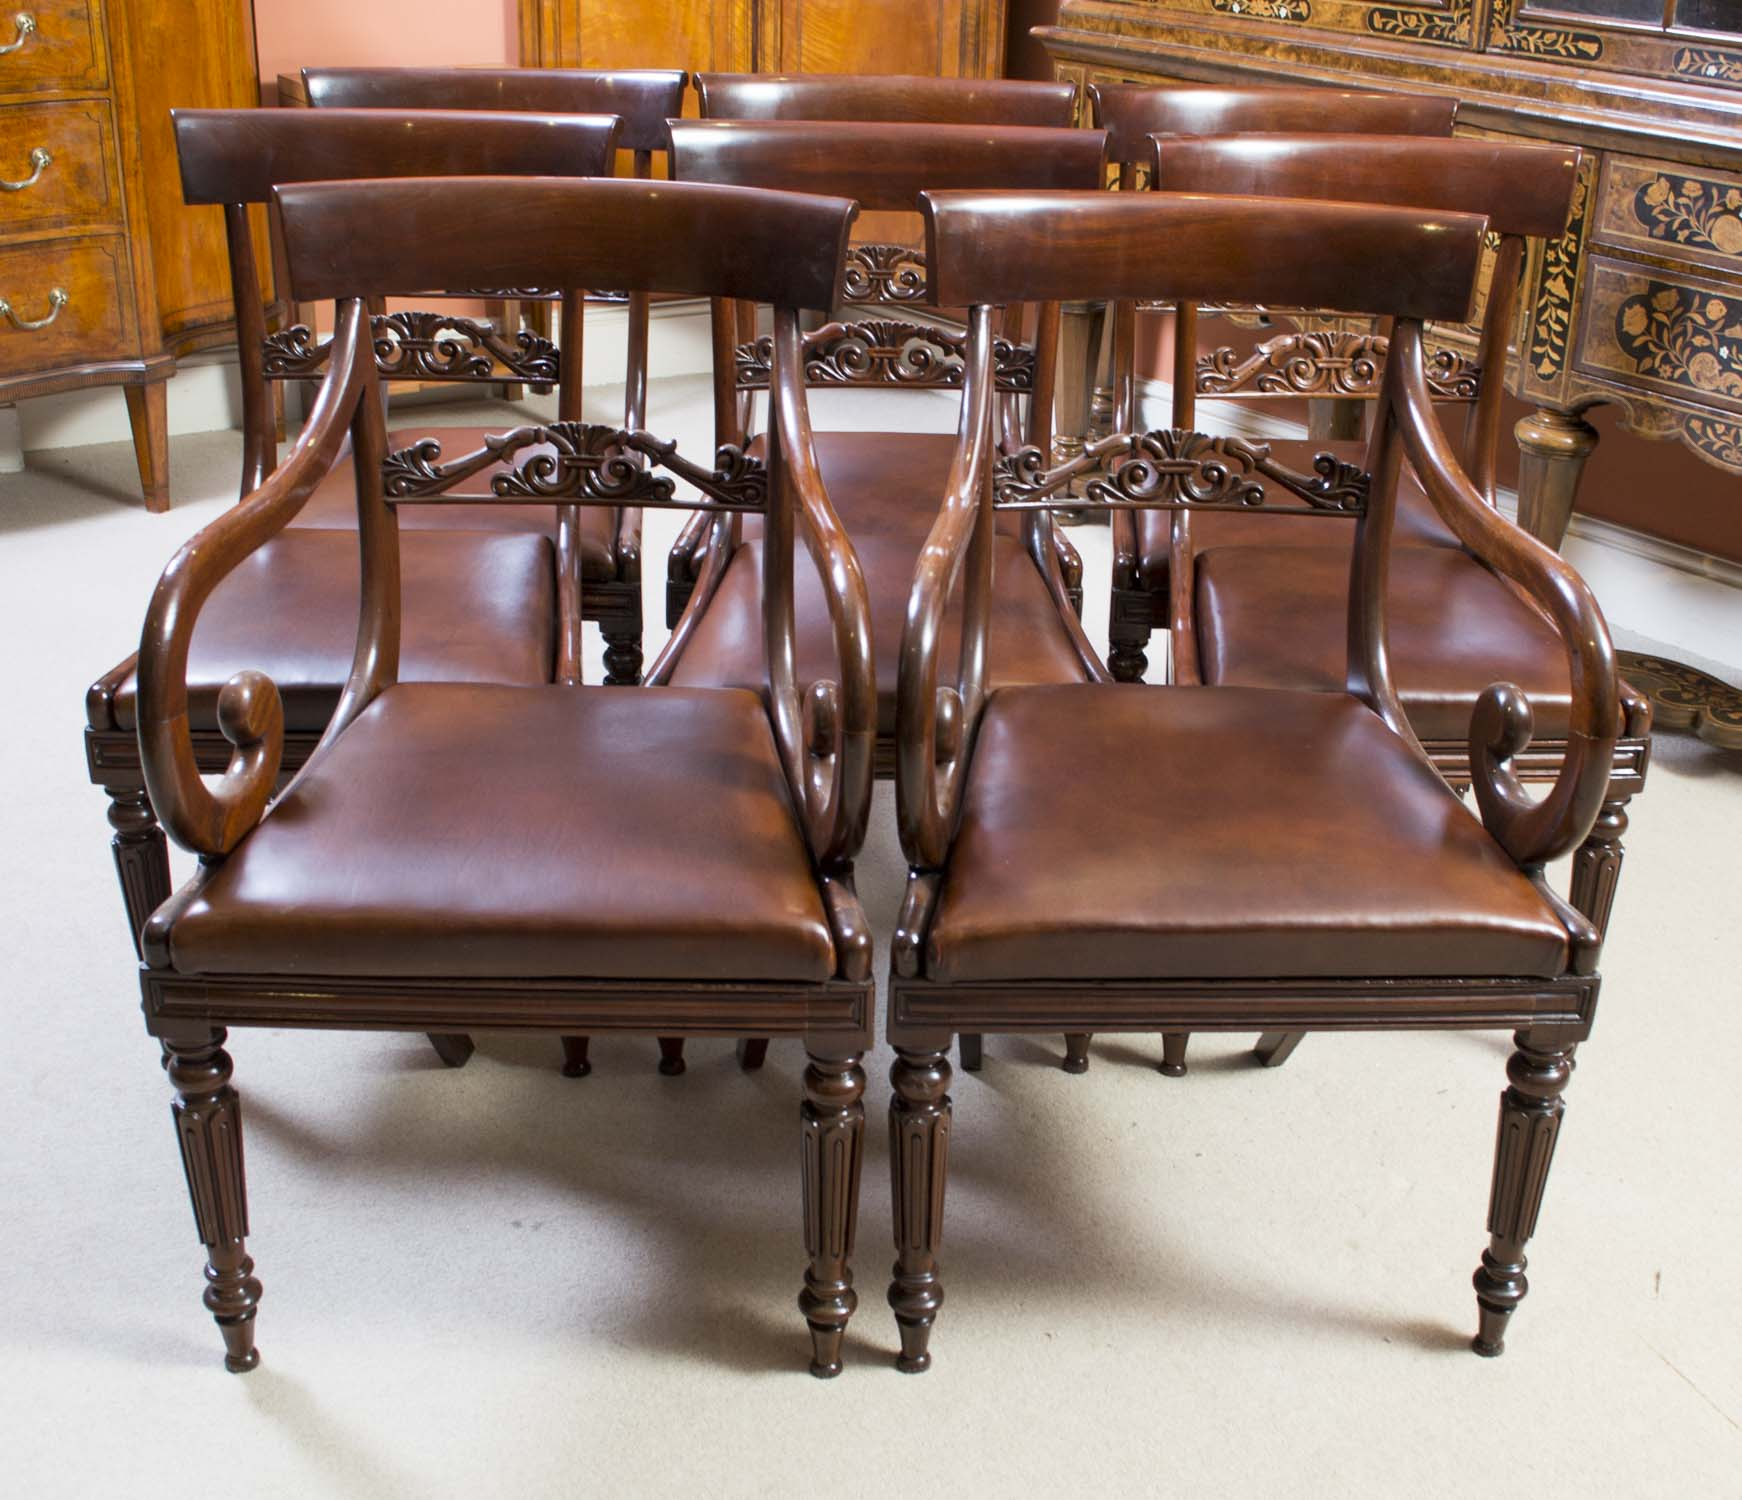 Dining Room Chairs Antique: Antique Regency Mahogany